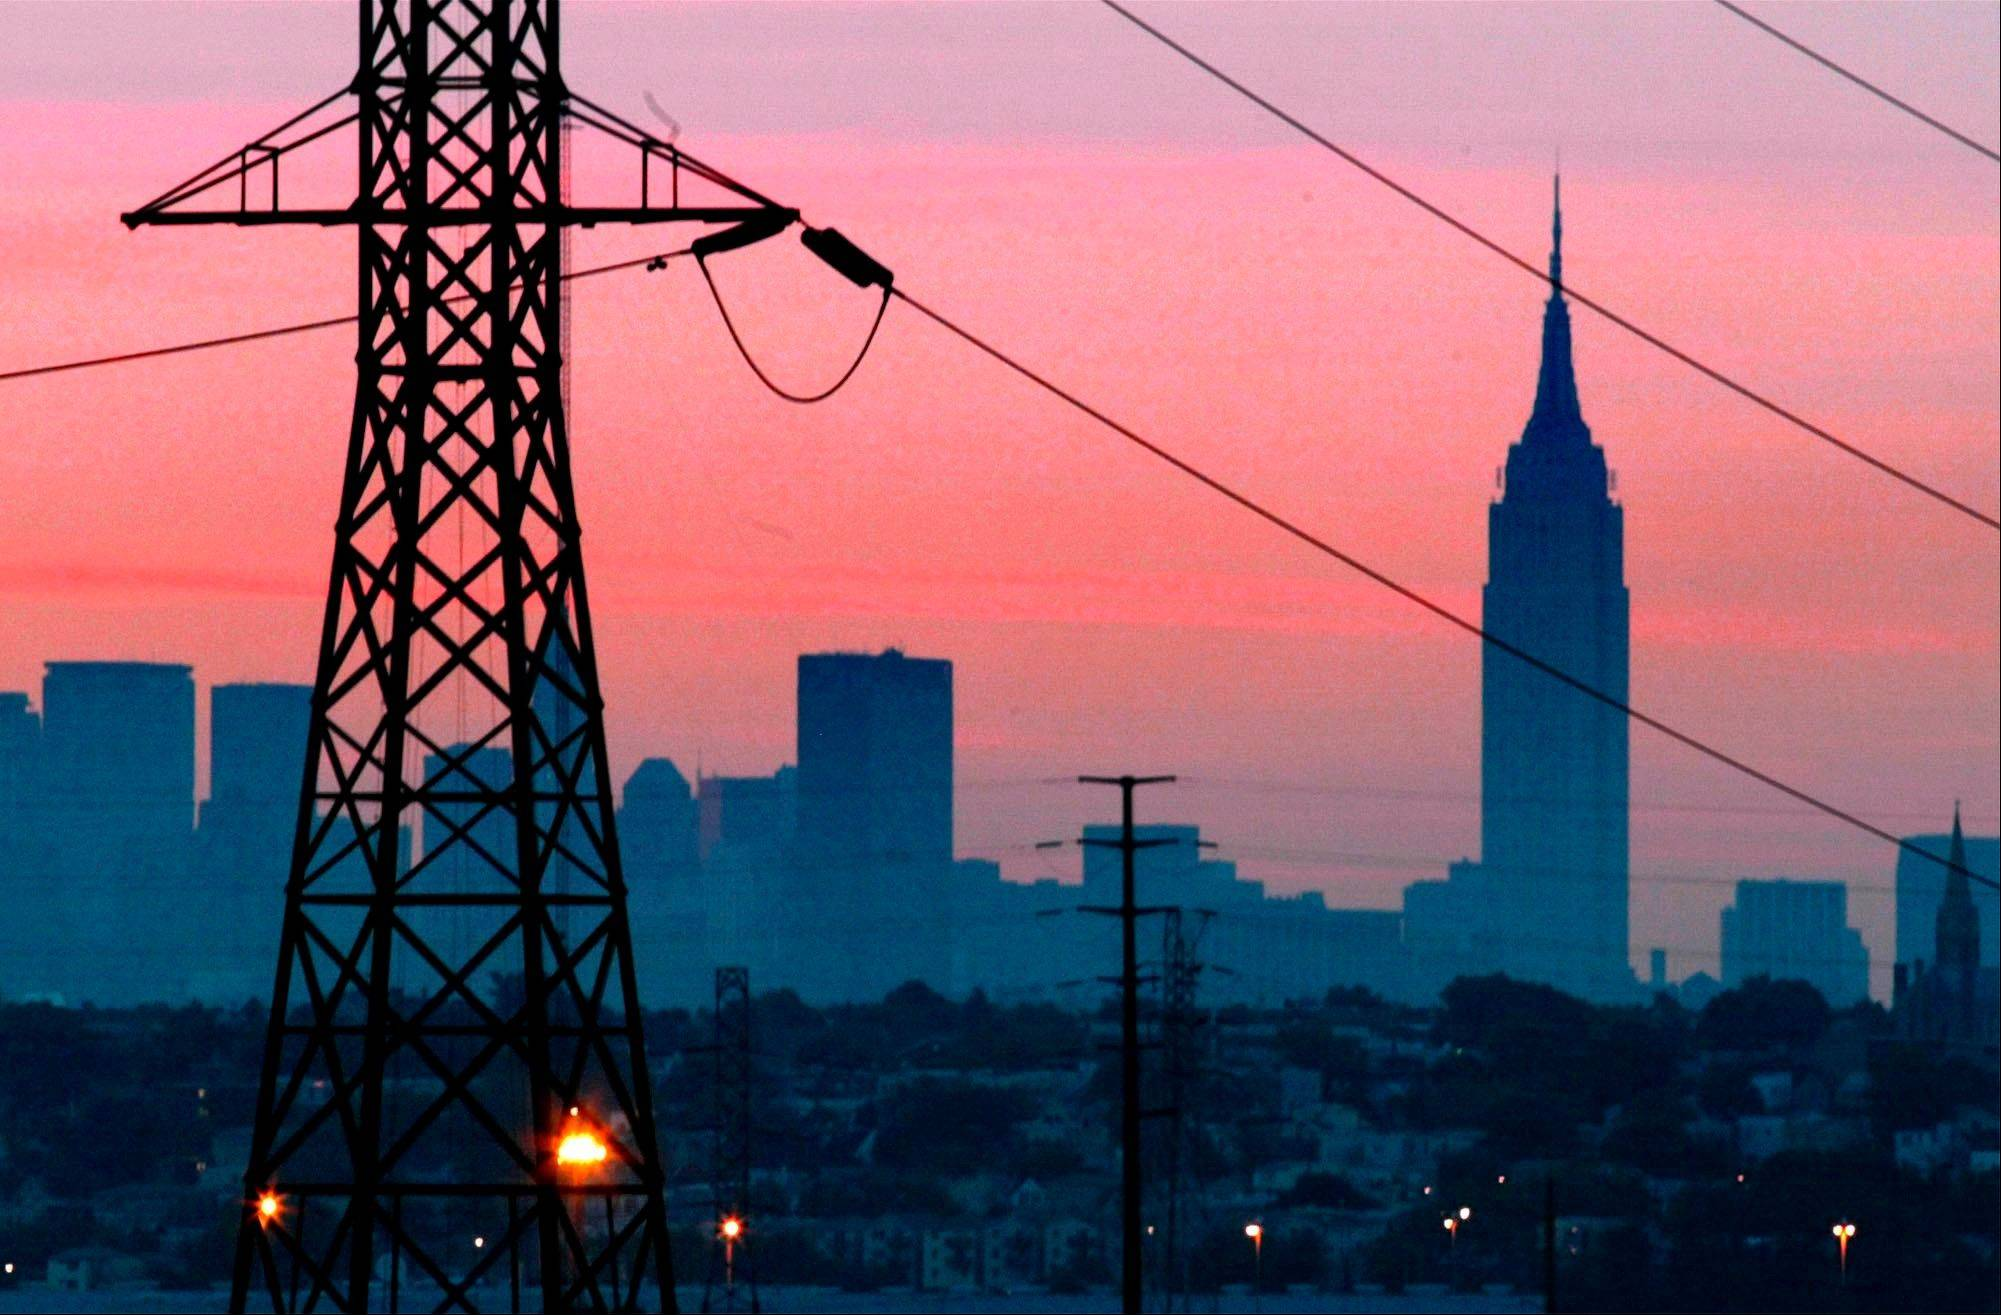 The Empire State Building towers over the skyline of a blackout-darkened New York City just before dawn.